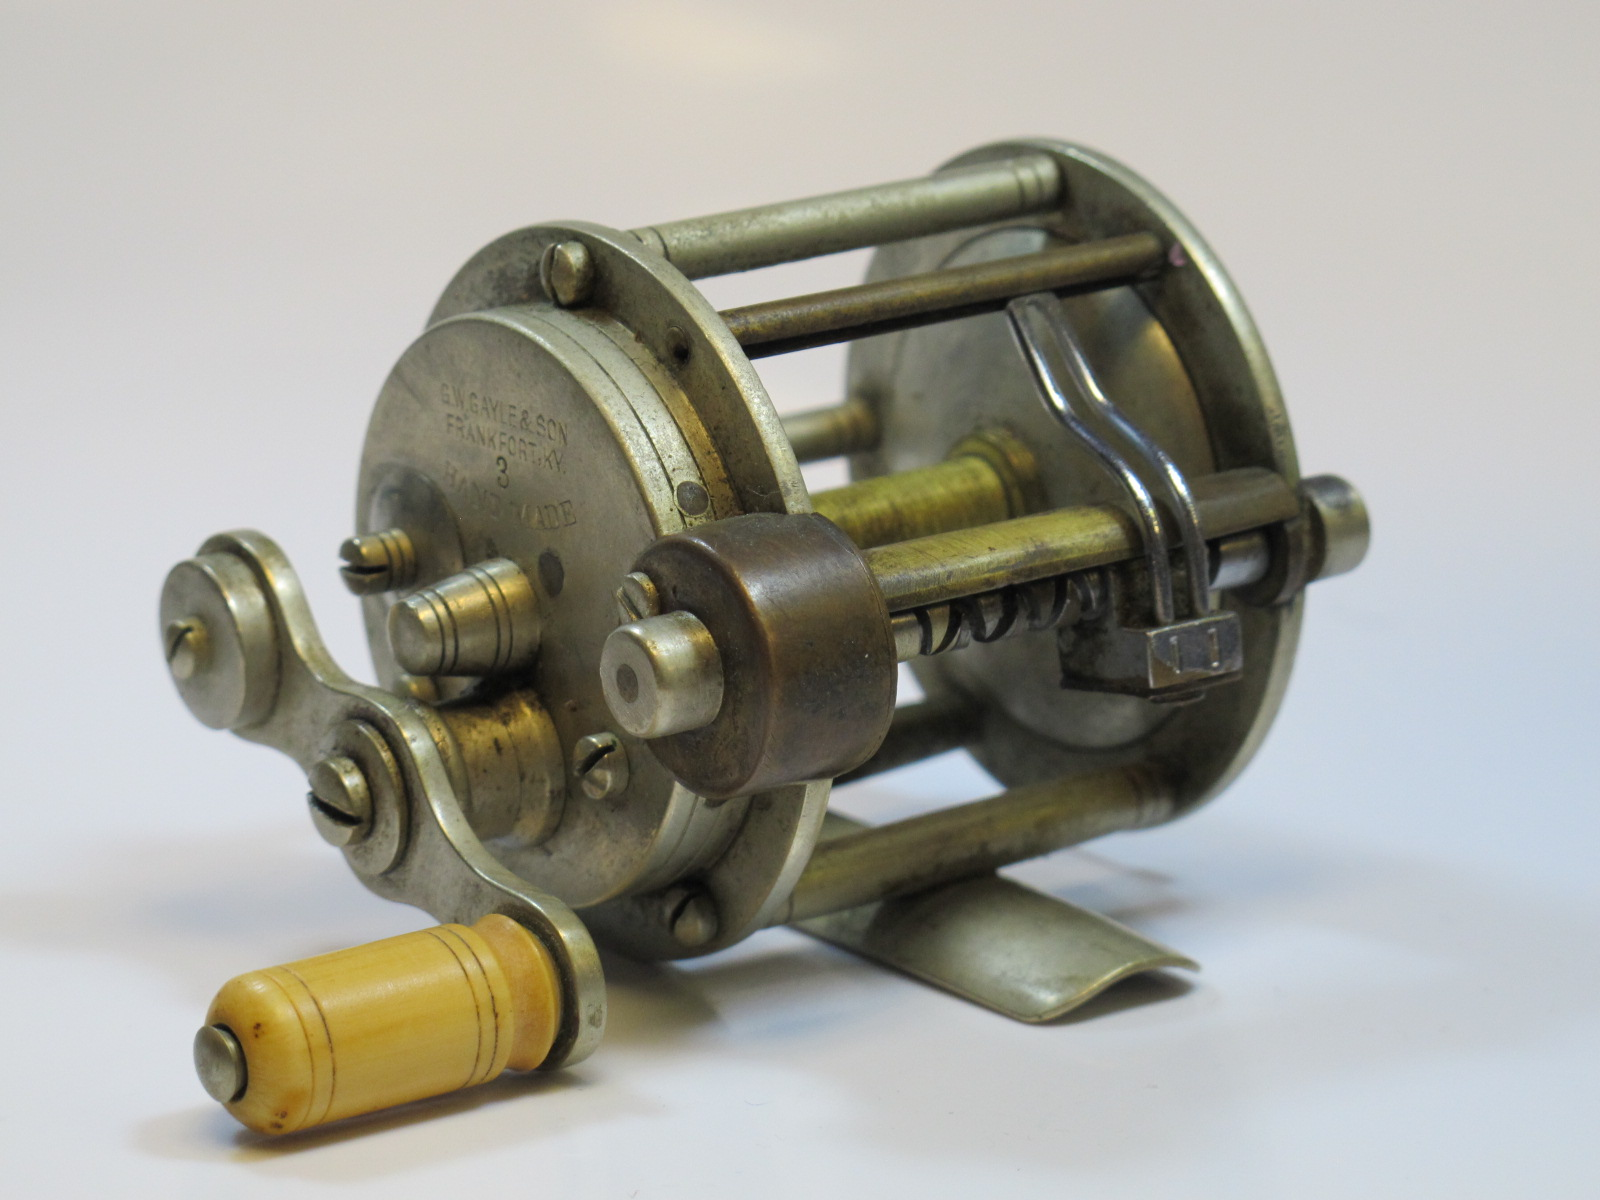 Antique fishing reels for sale for Vintage fishing reels